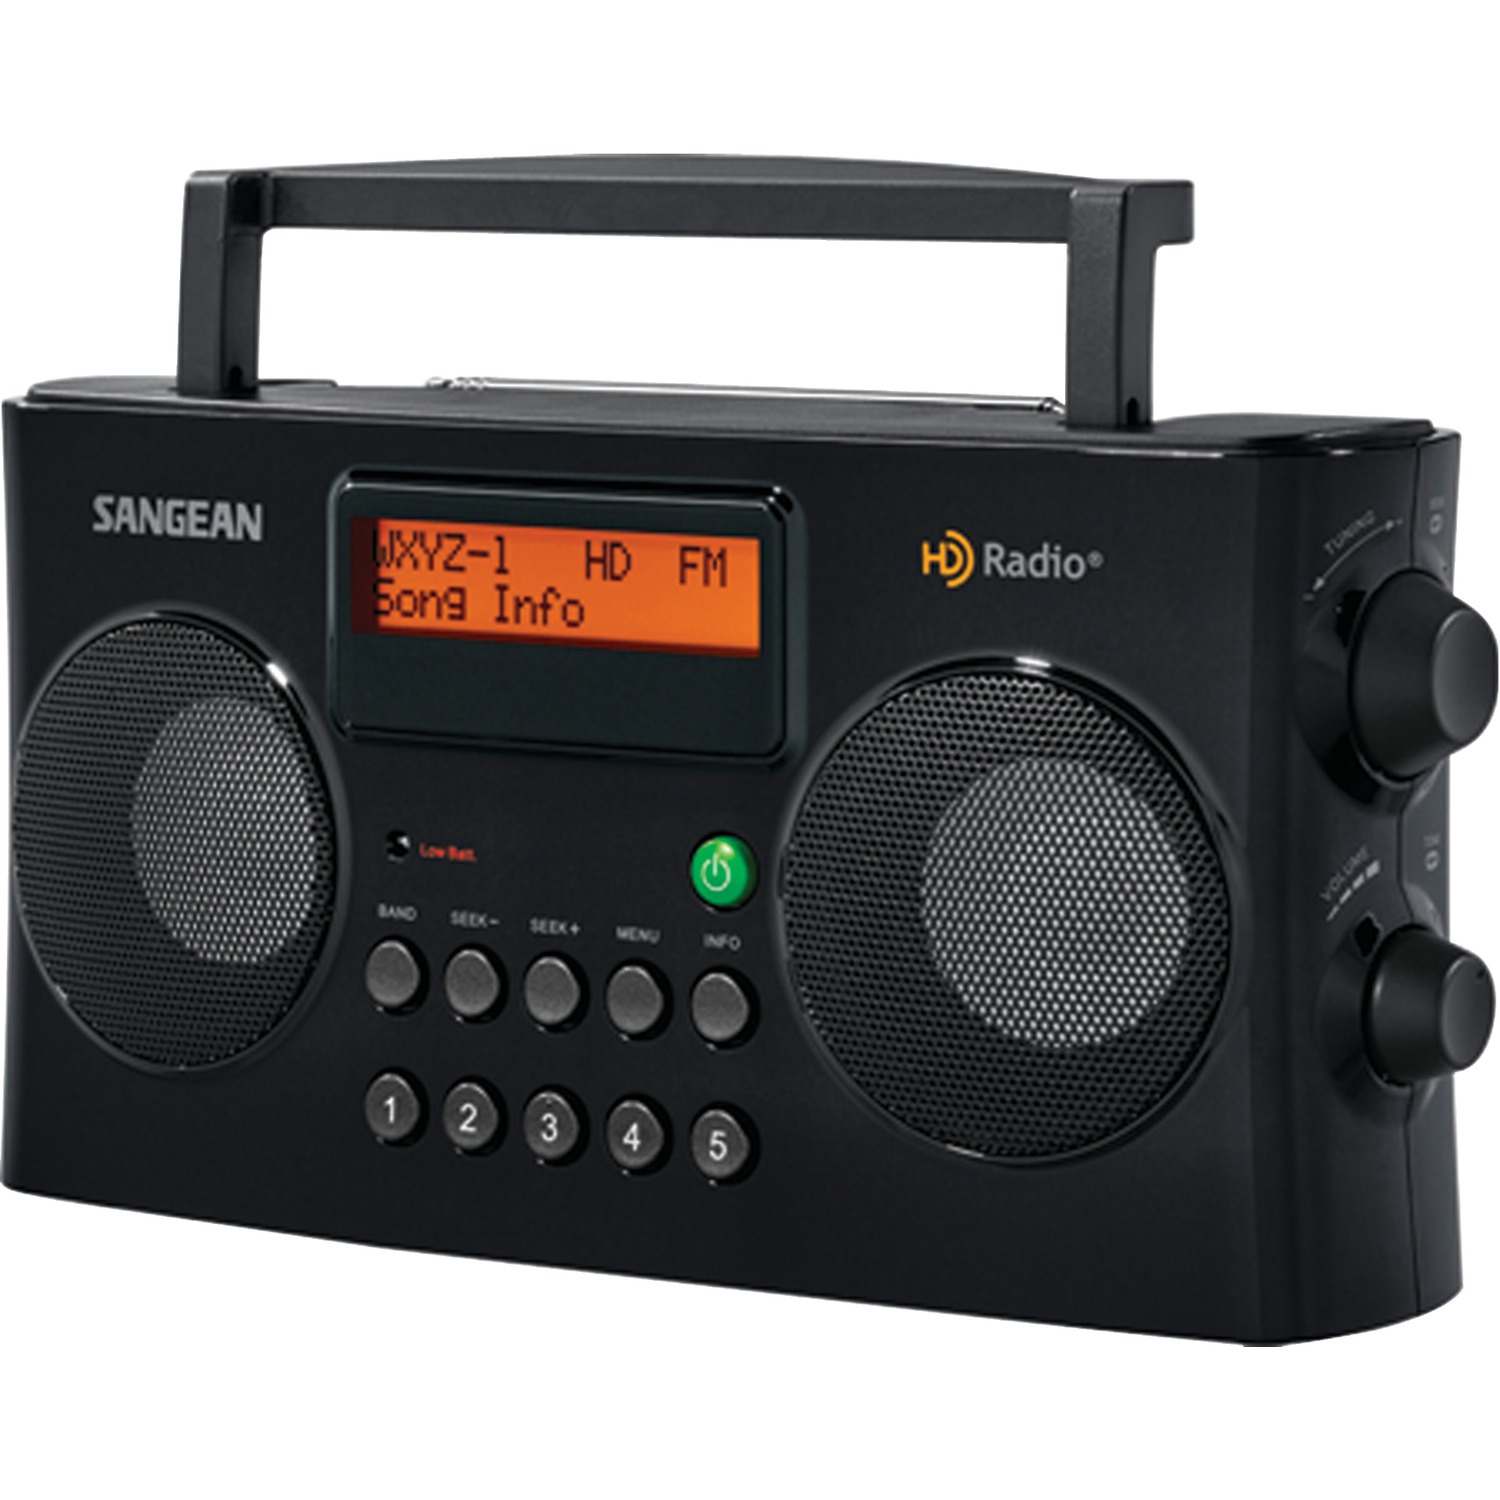 sangean hdr 16 am fm hd portable radio. Black Bedroom Furniture Sets. Home Design Ideas